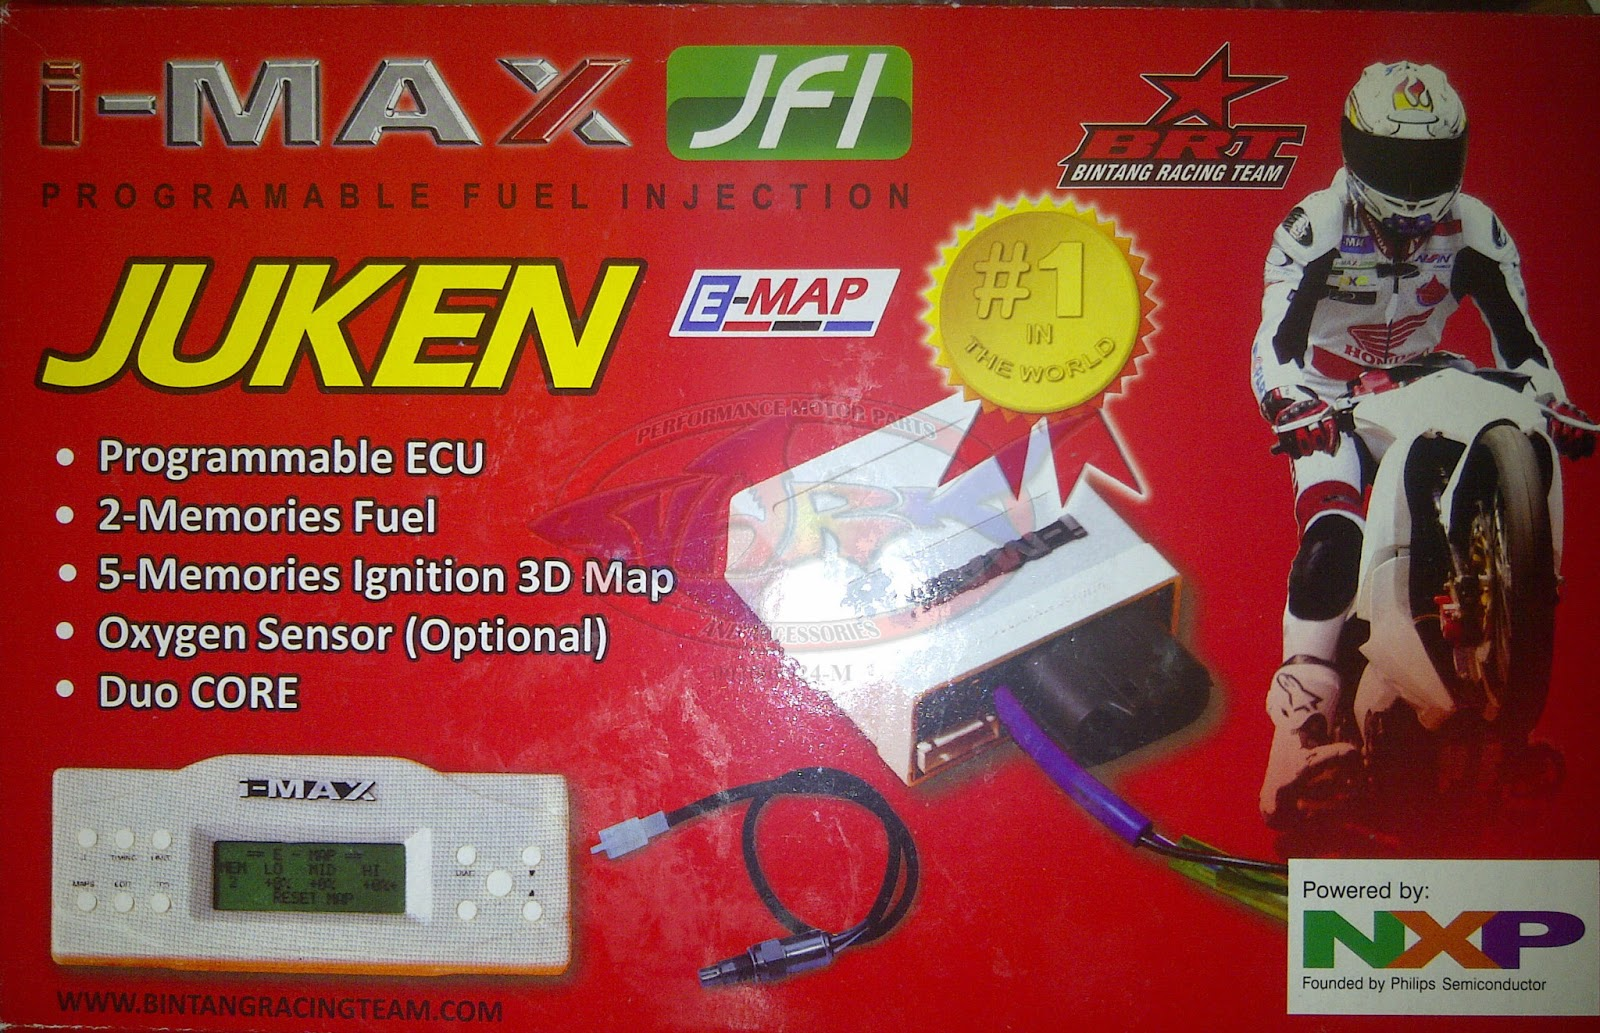 New BRT I-MAX JUKEN Programmable ECU - Fuel Injection for Yamaha